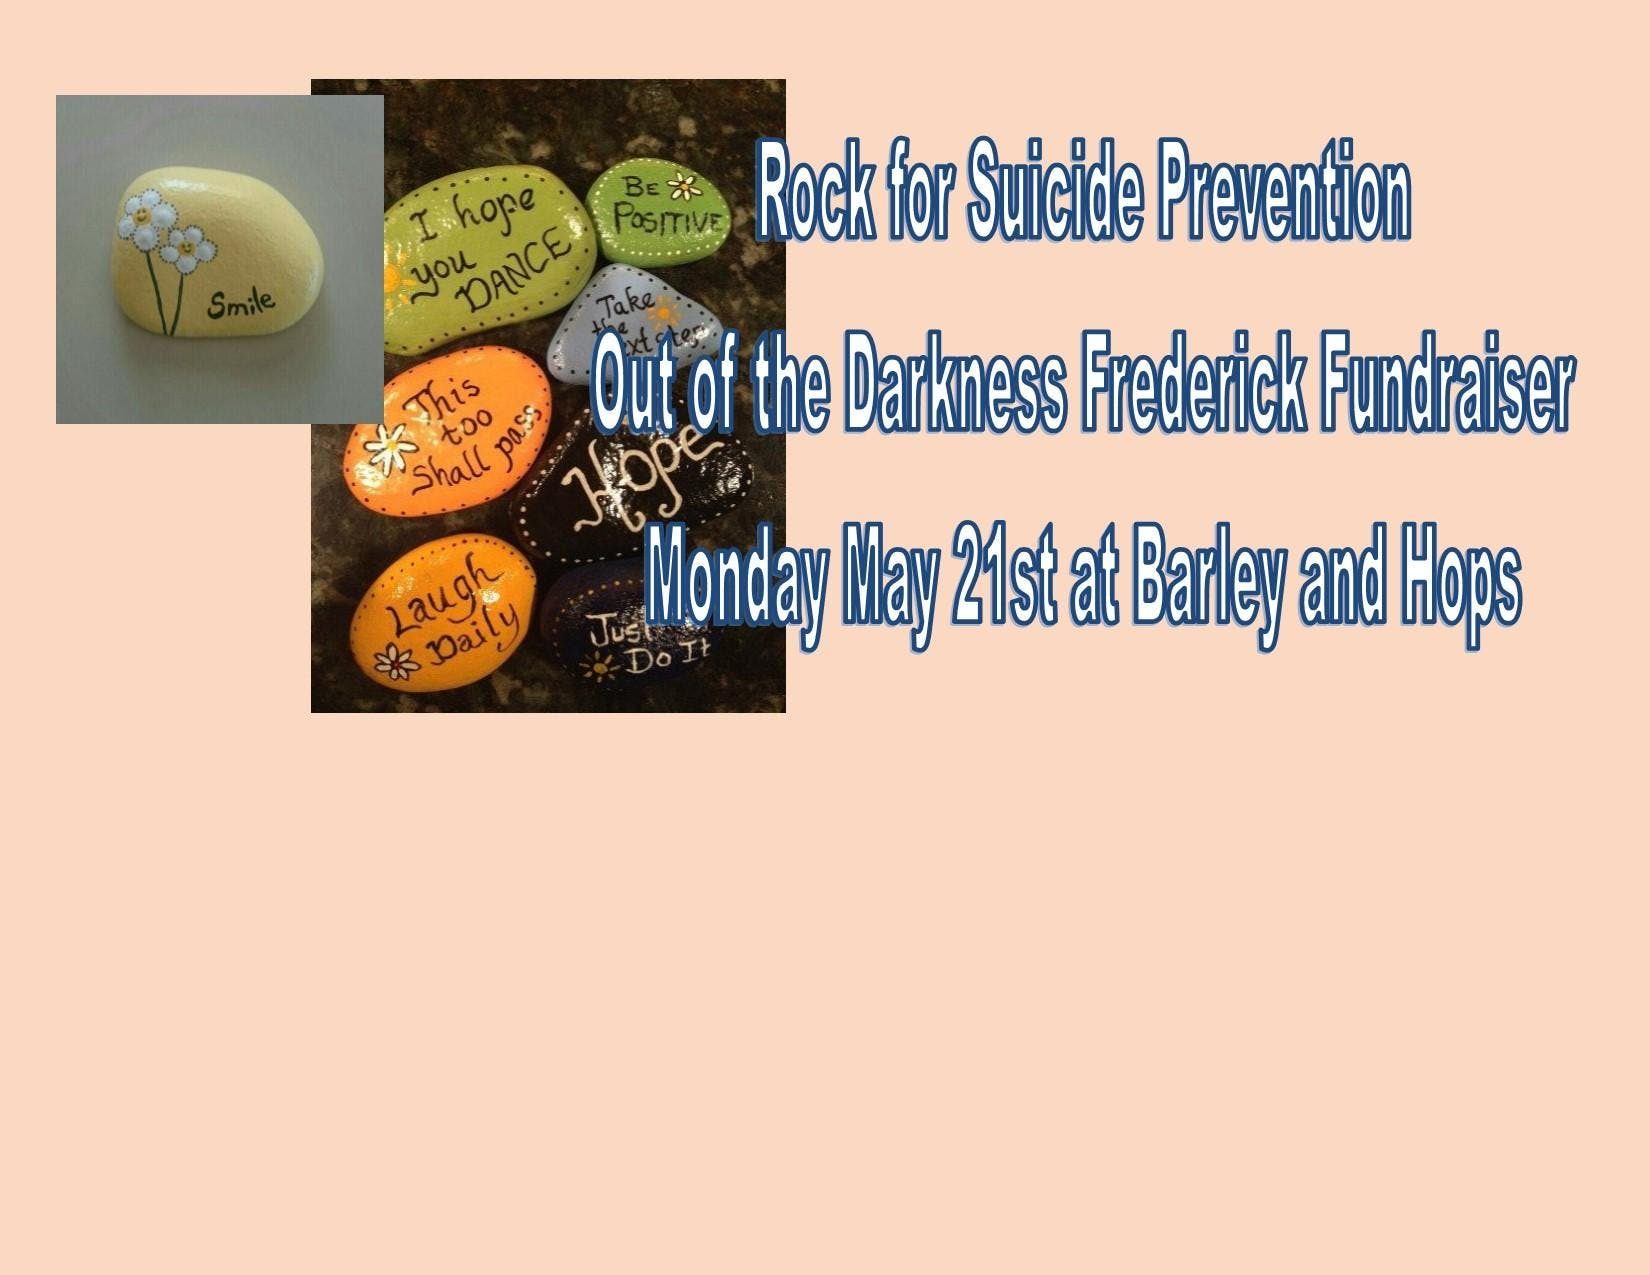 Rock for Suicide Prevention